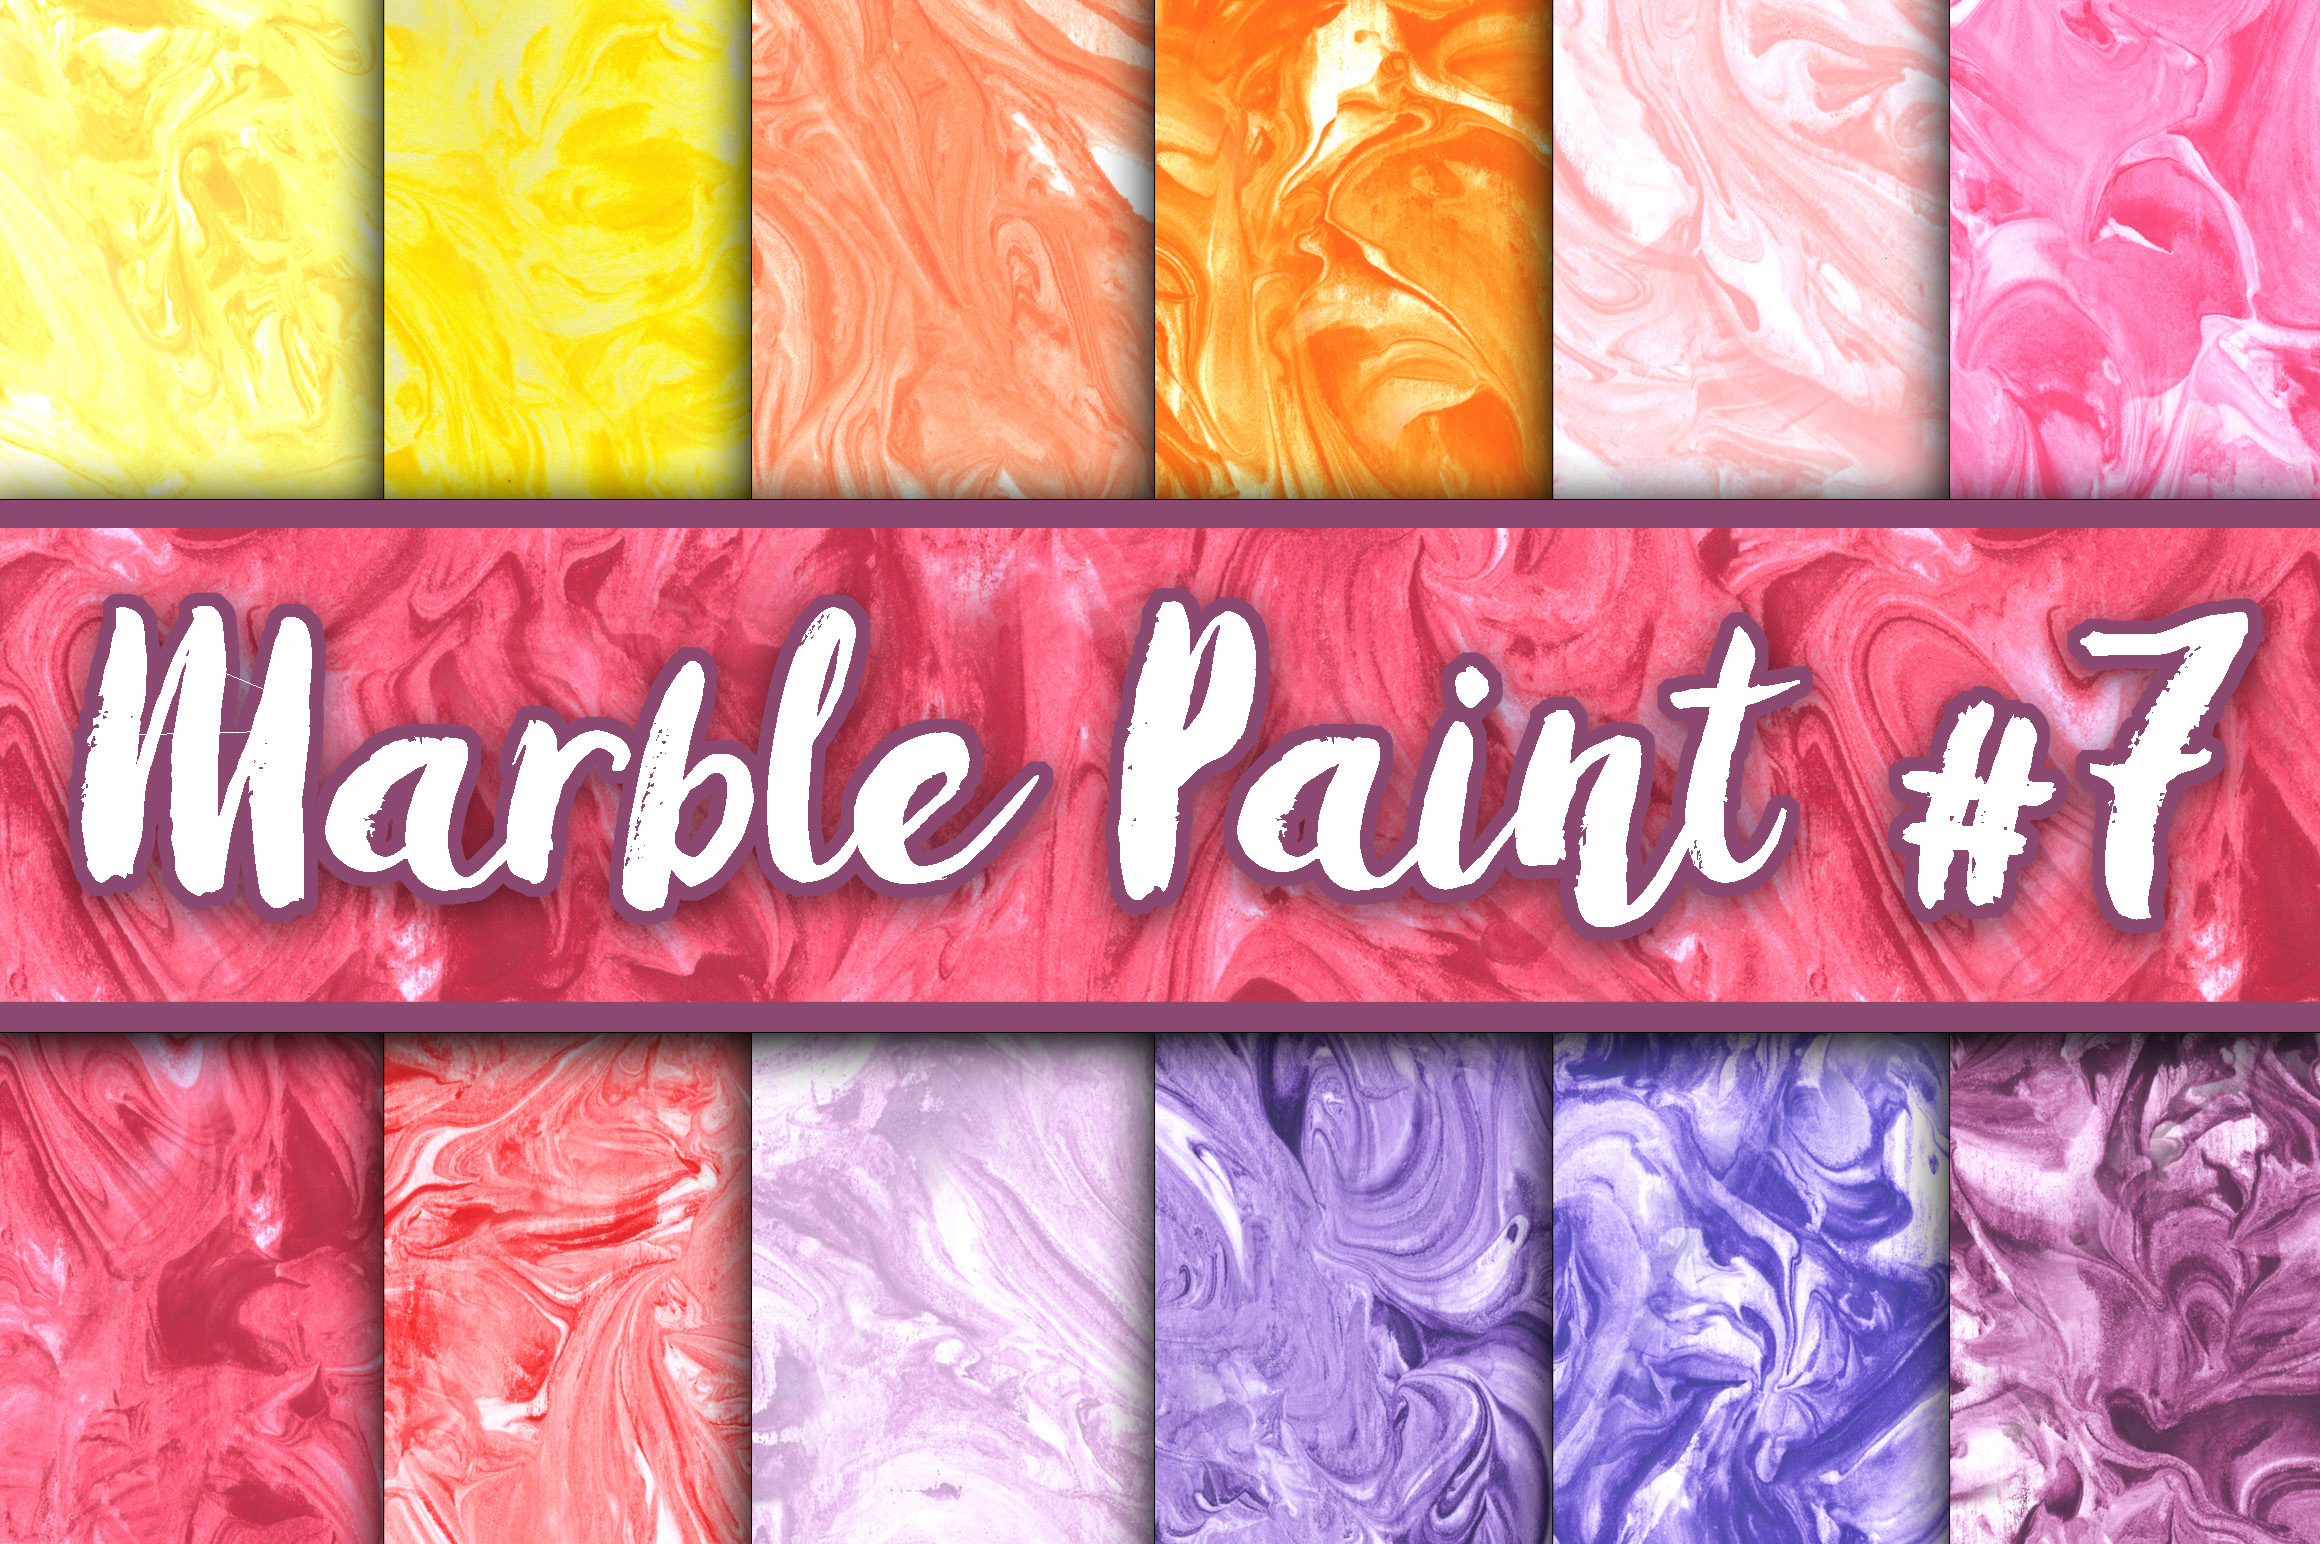 Marble Paint Textures - Yellow, Orange, Pink, Red and Purple Graphic Textures By oldmarketdesigns - Image 1